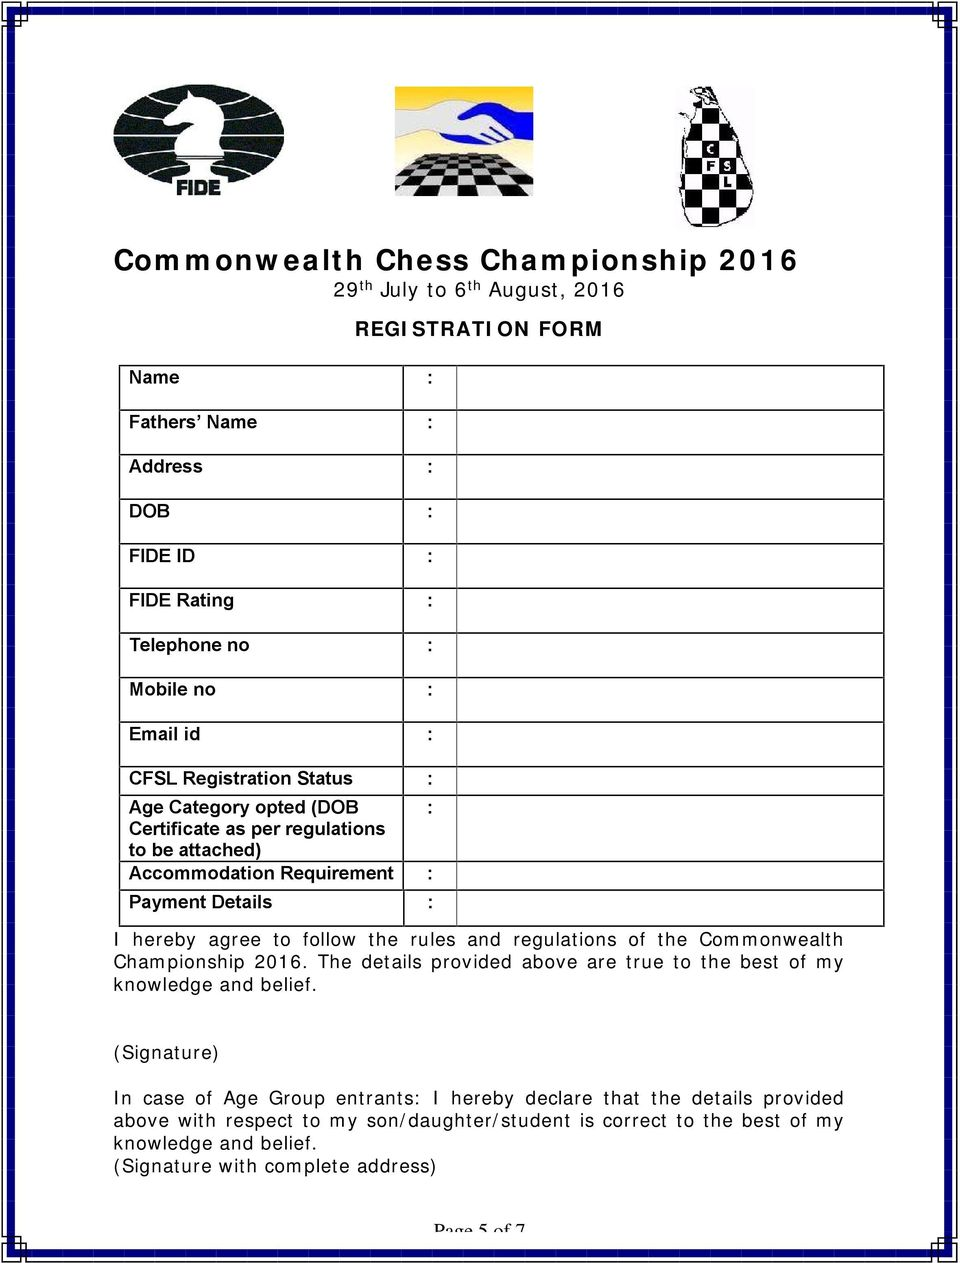 regulations of the Commonwealth Championship 2016. The details provided above are true to the best of my knowledge and belief.